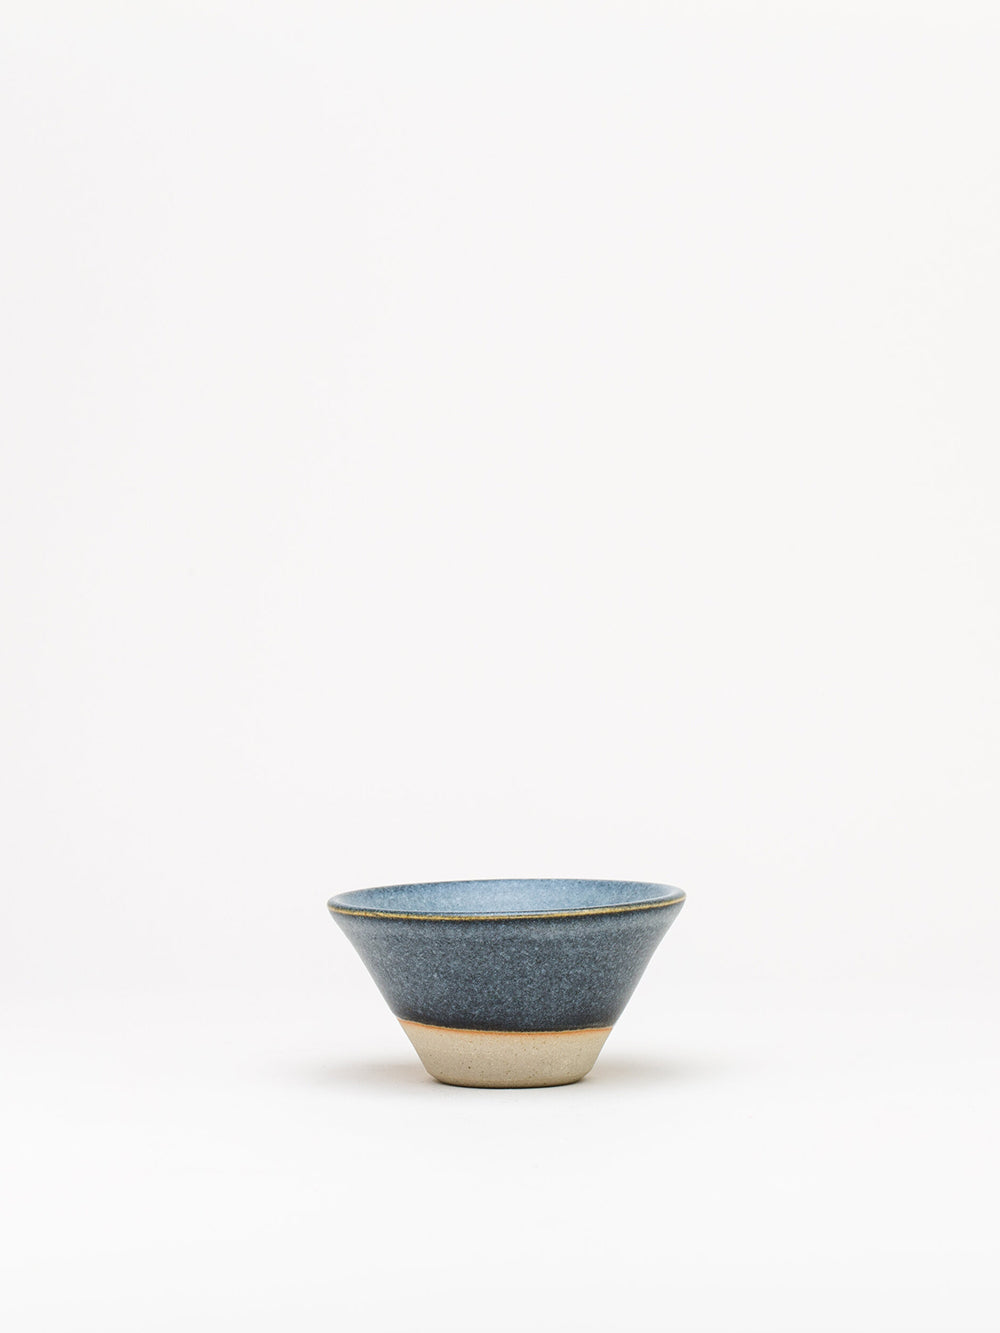 wrf small v-bowl in ash